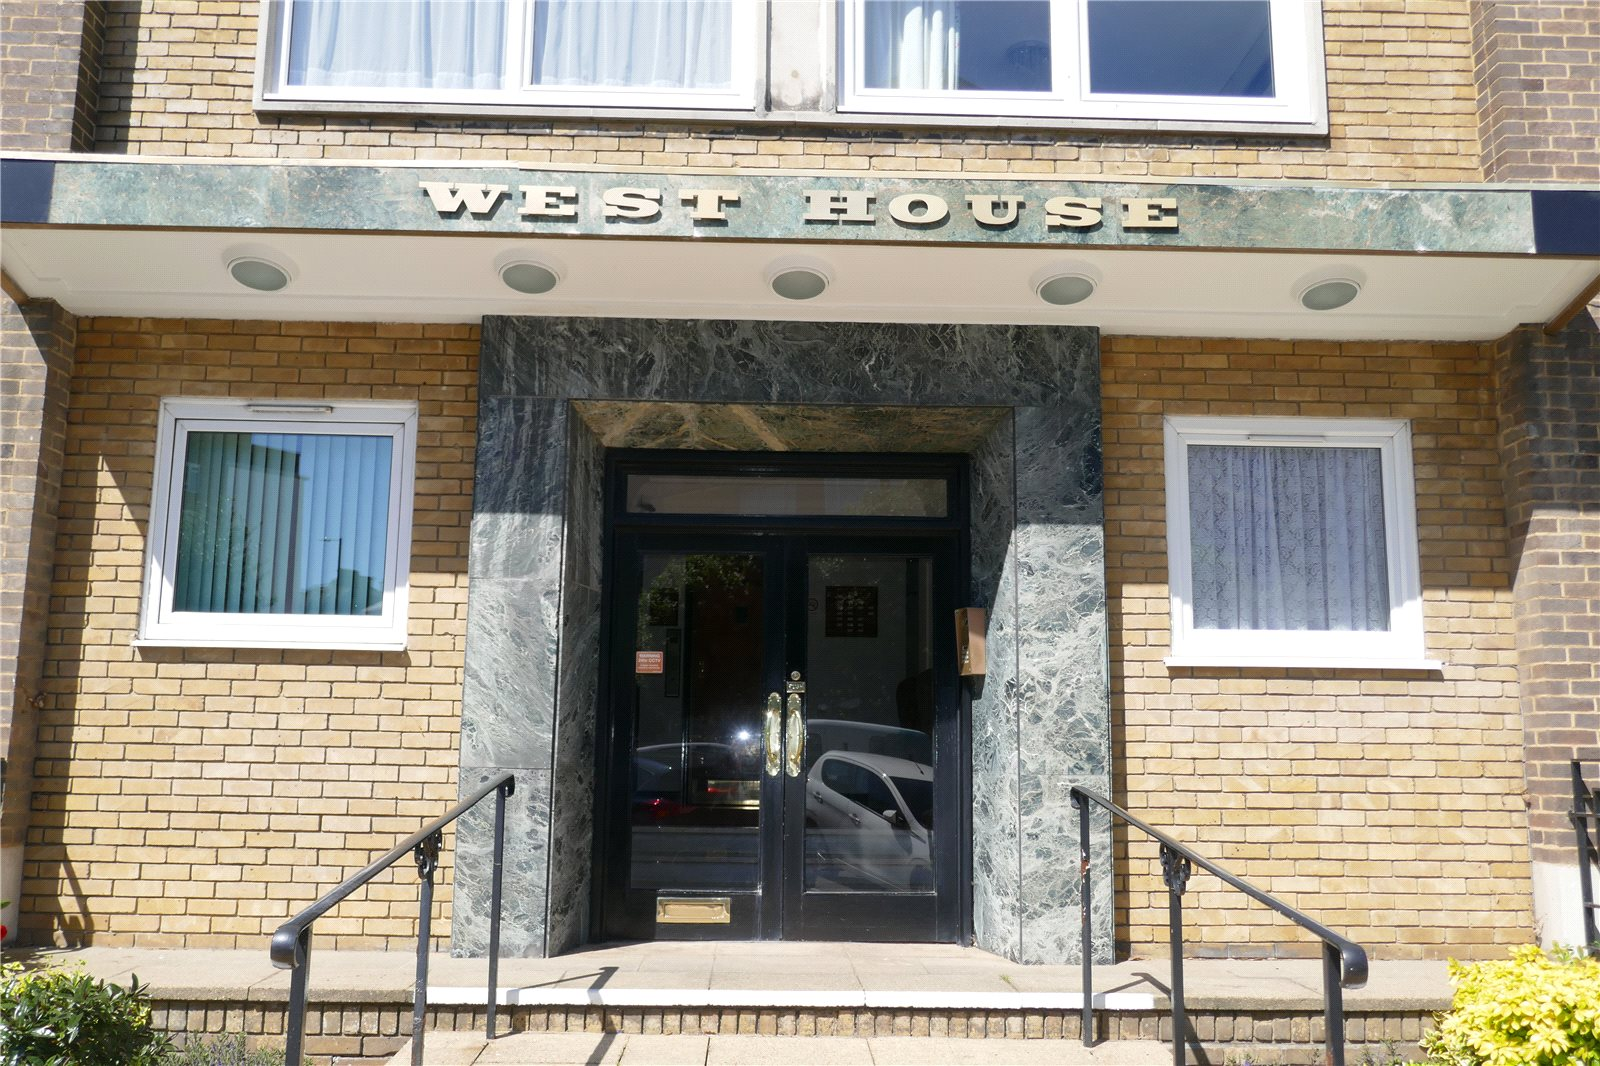 West House, Chiswick Place